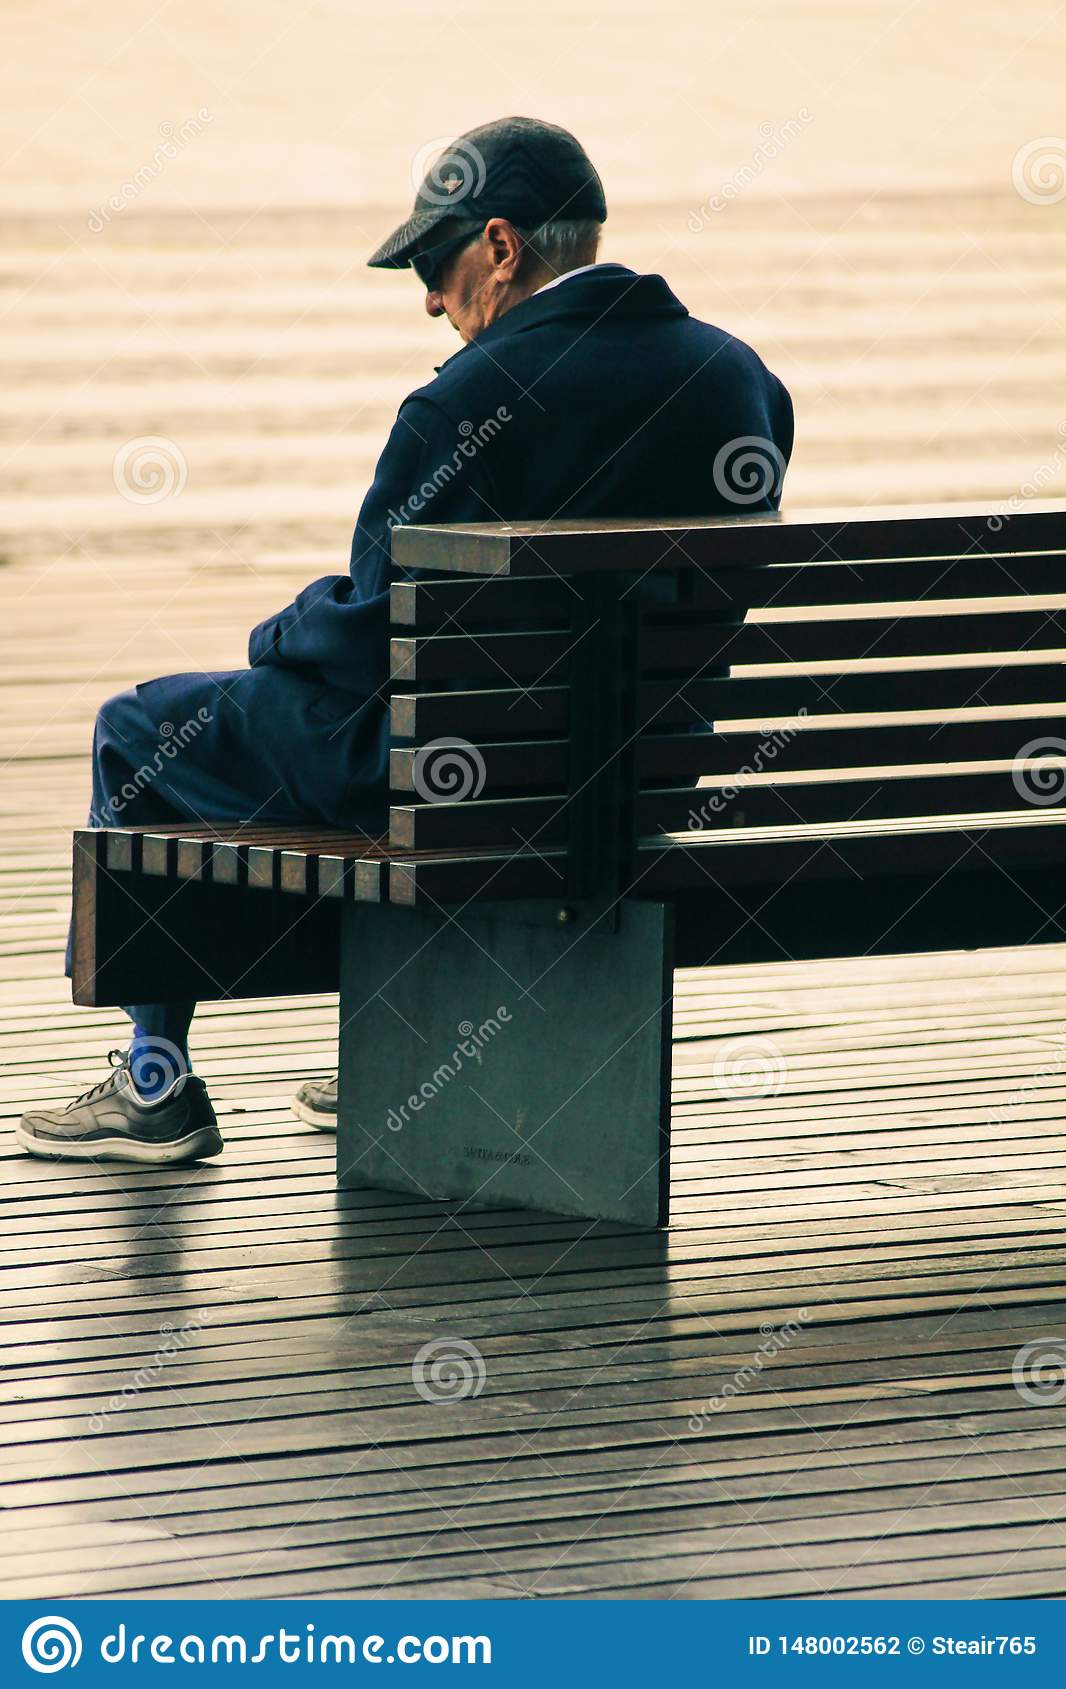 Old man sitting alone on a bench